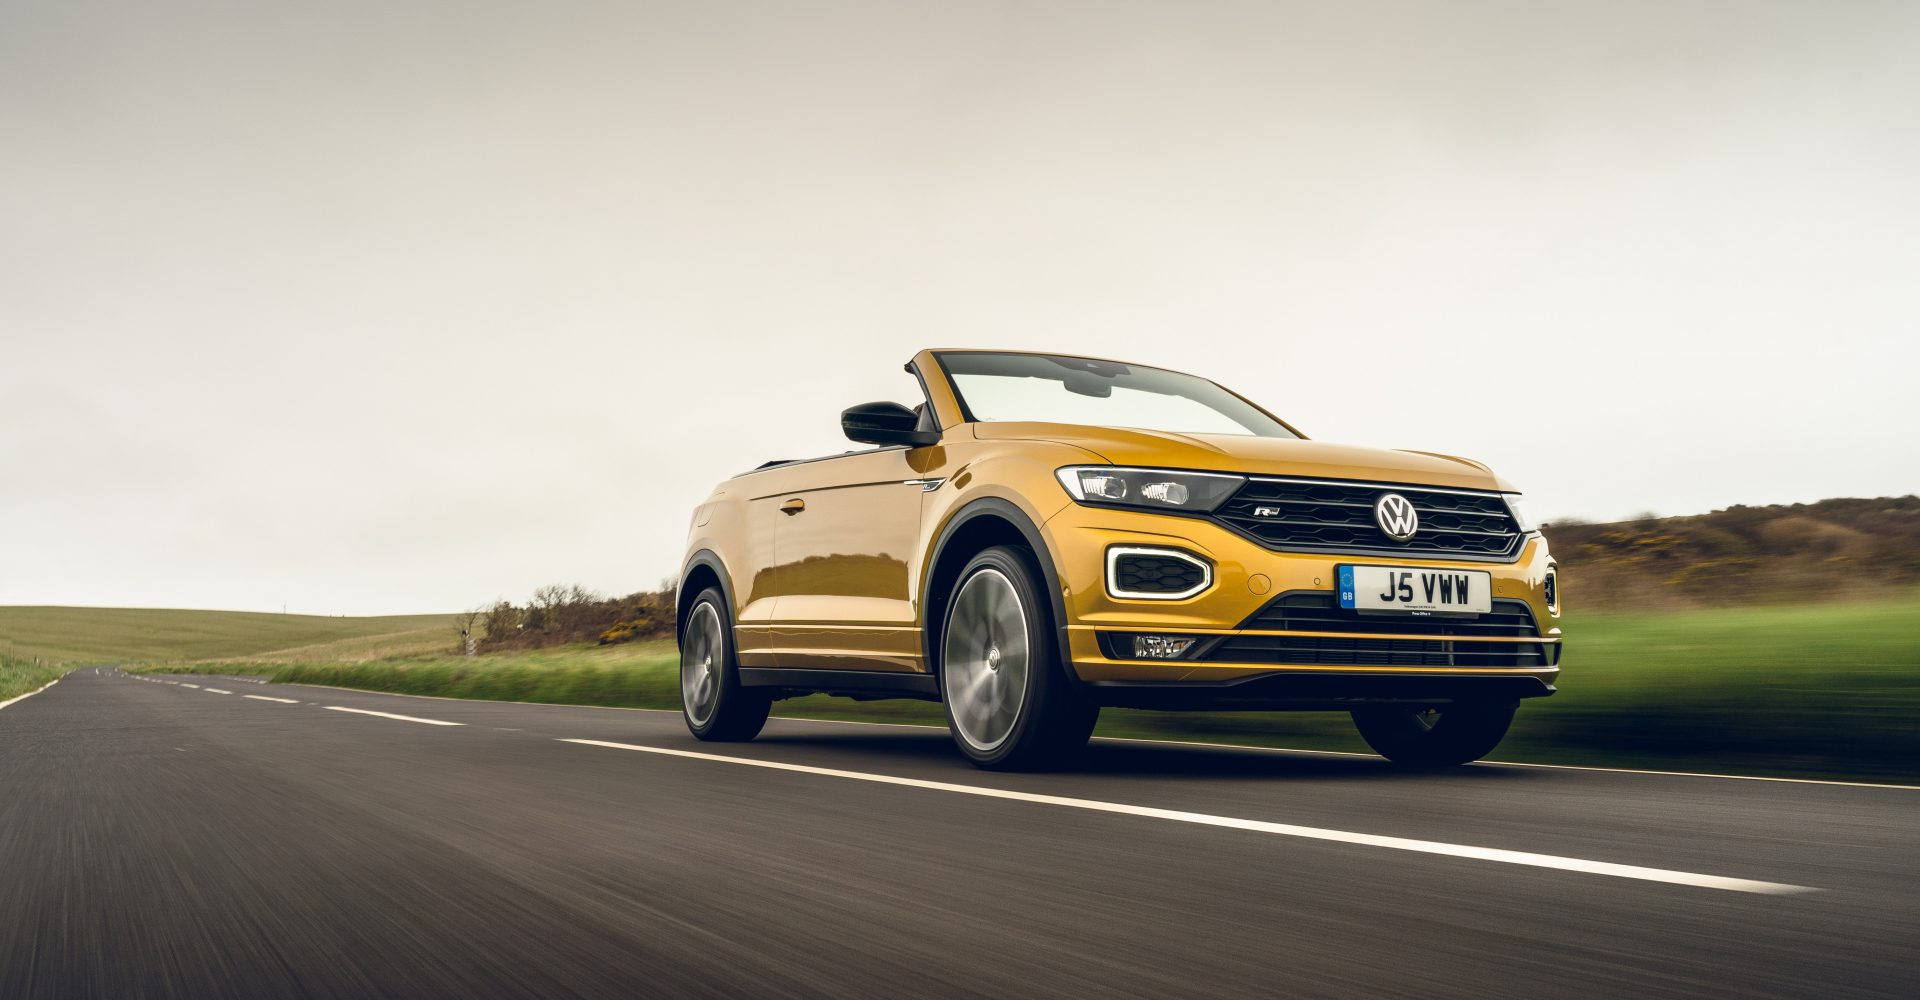 First Drive: The Volkswagen T-Roc Cabriolet is a great alternative to the drop-top norm